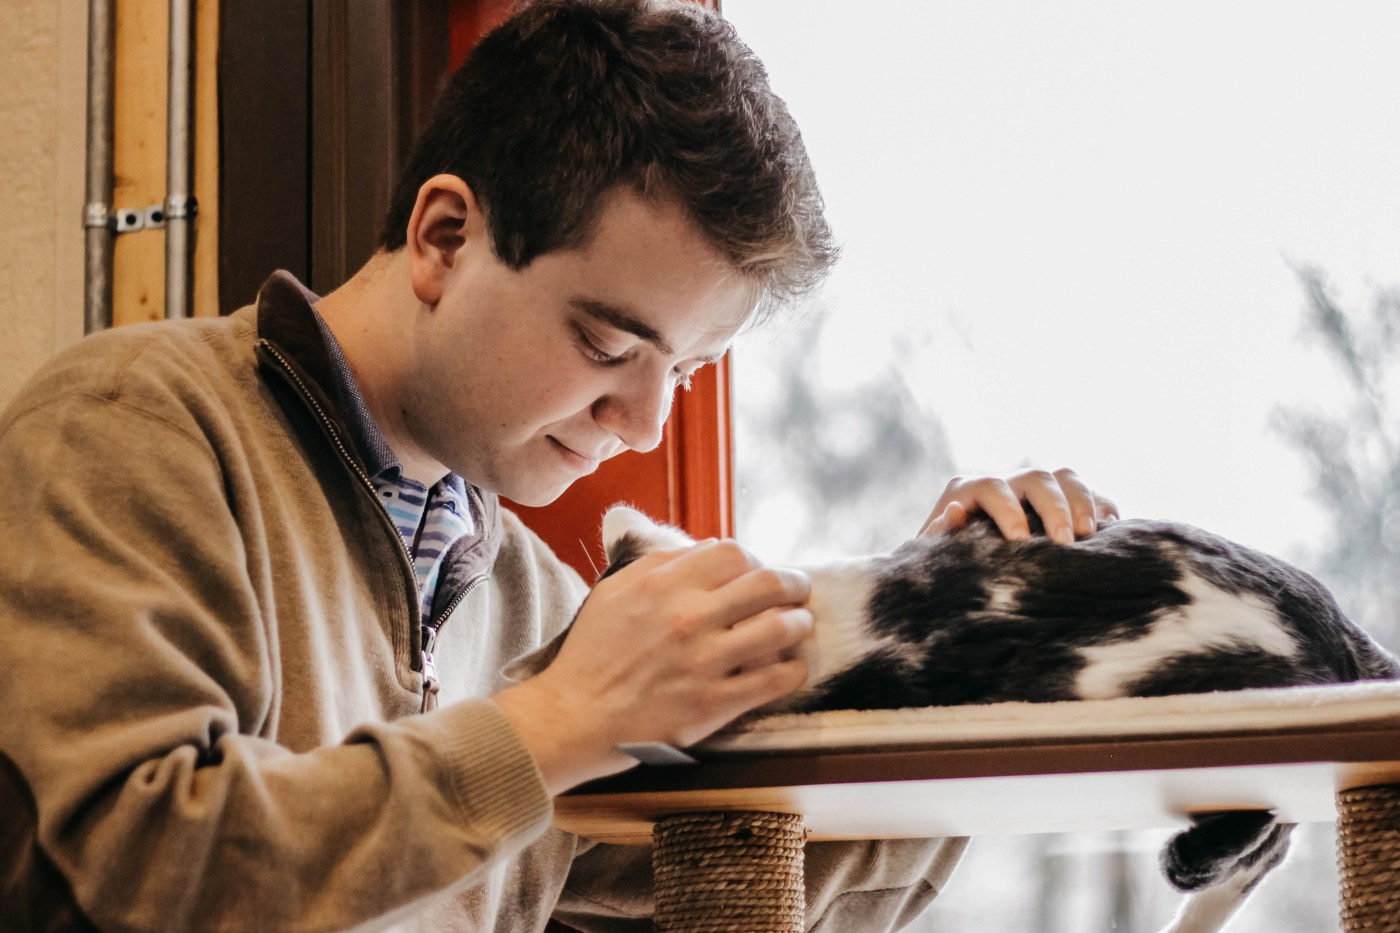 Nathan and cat